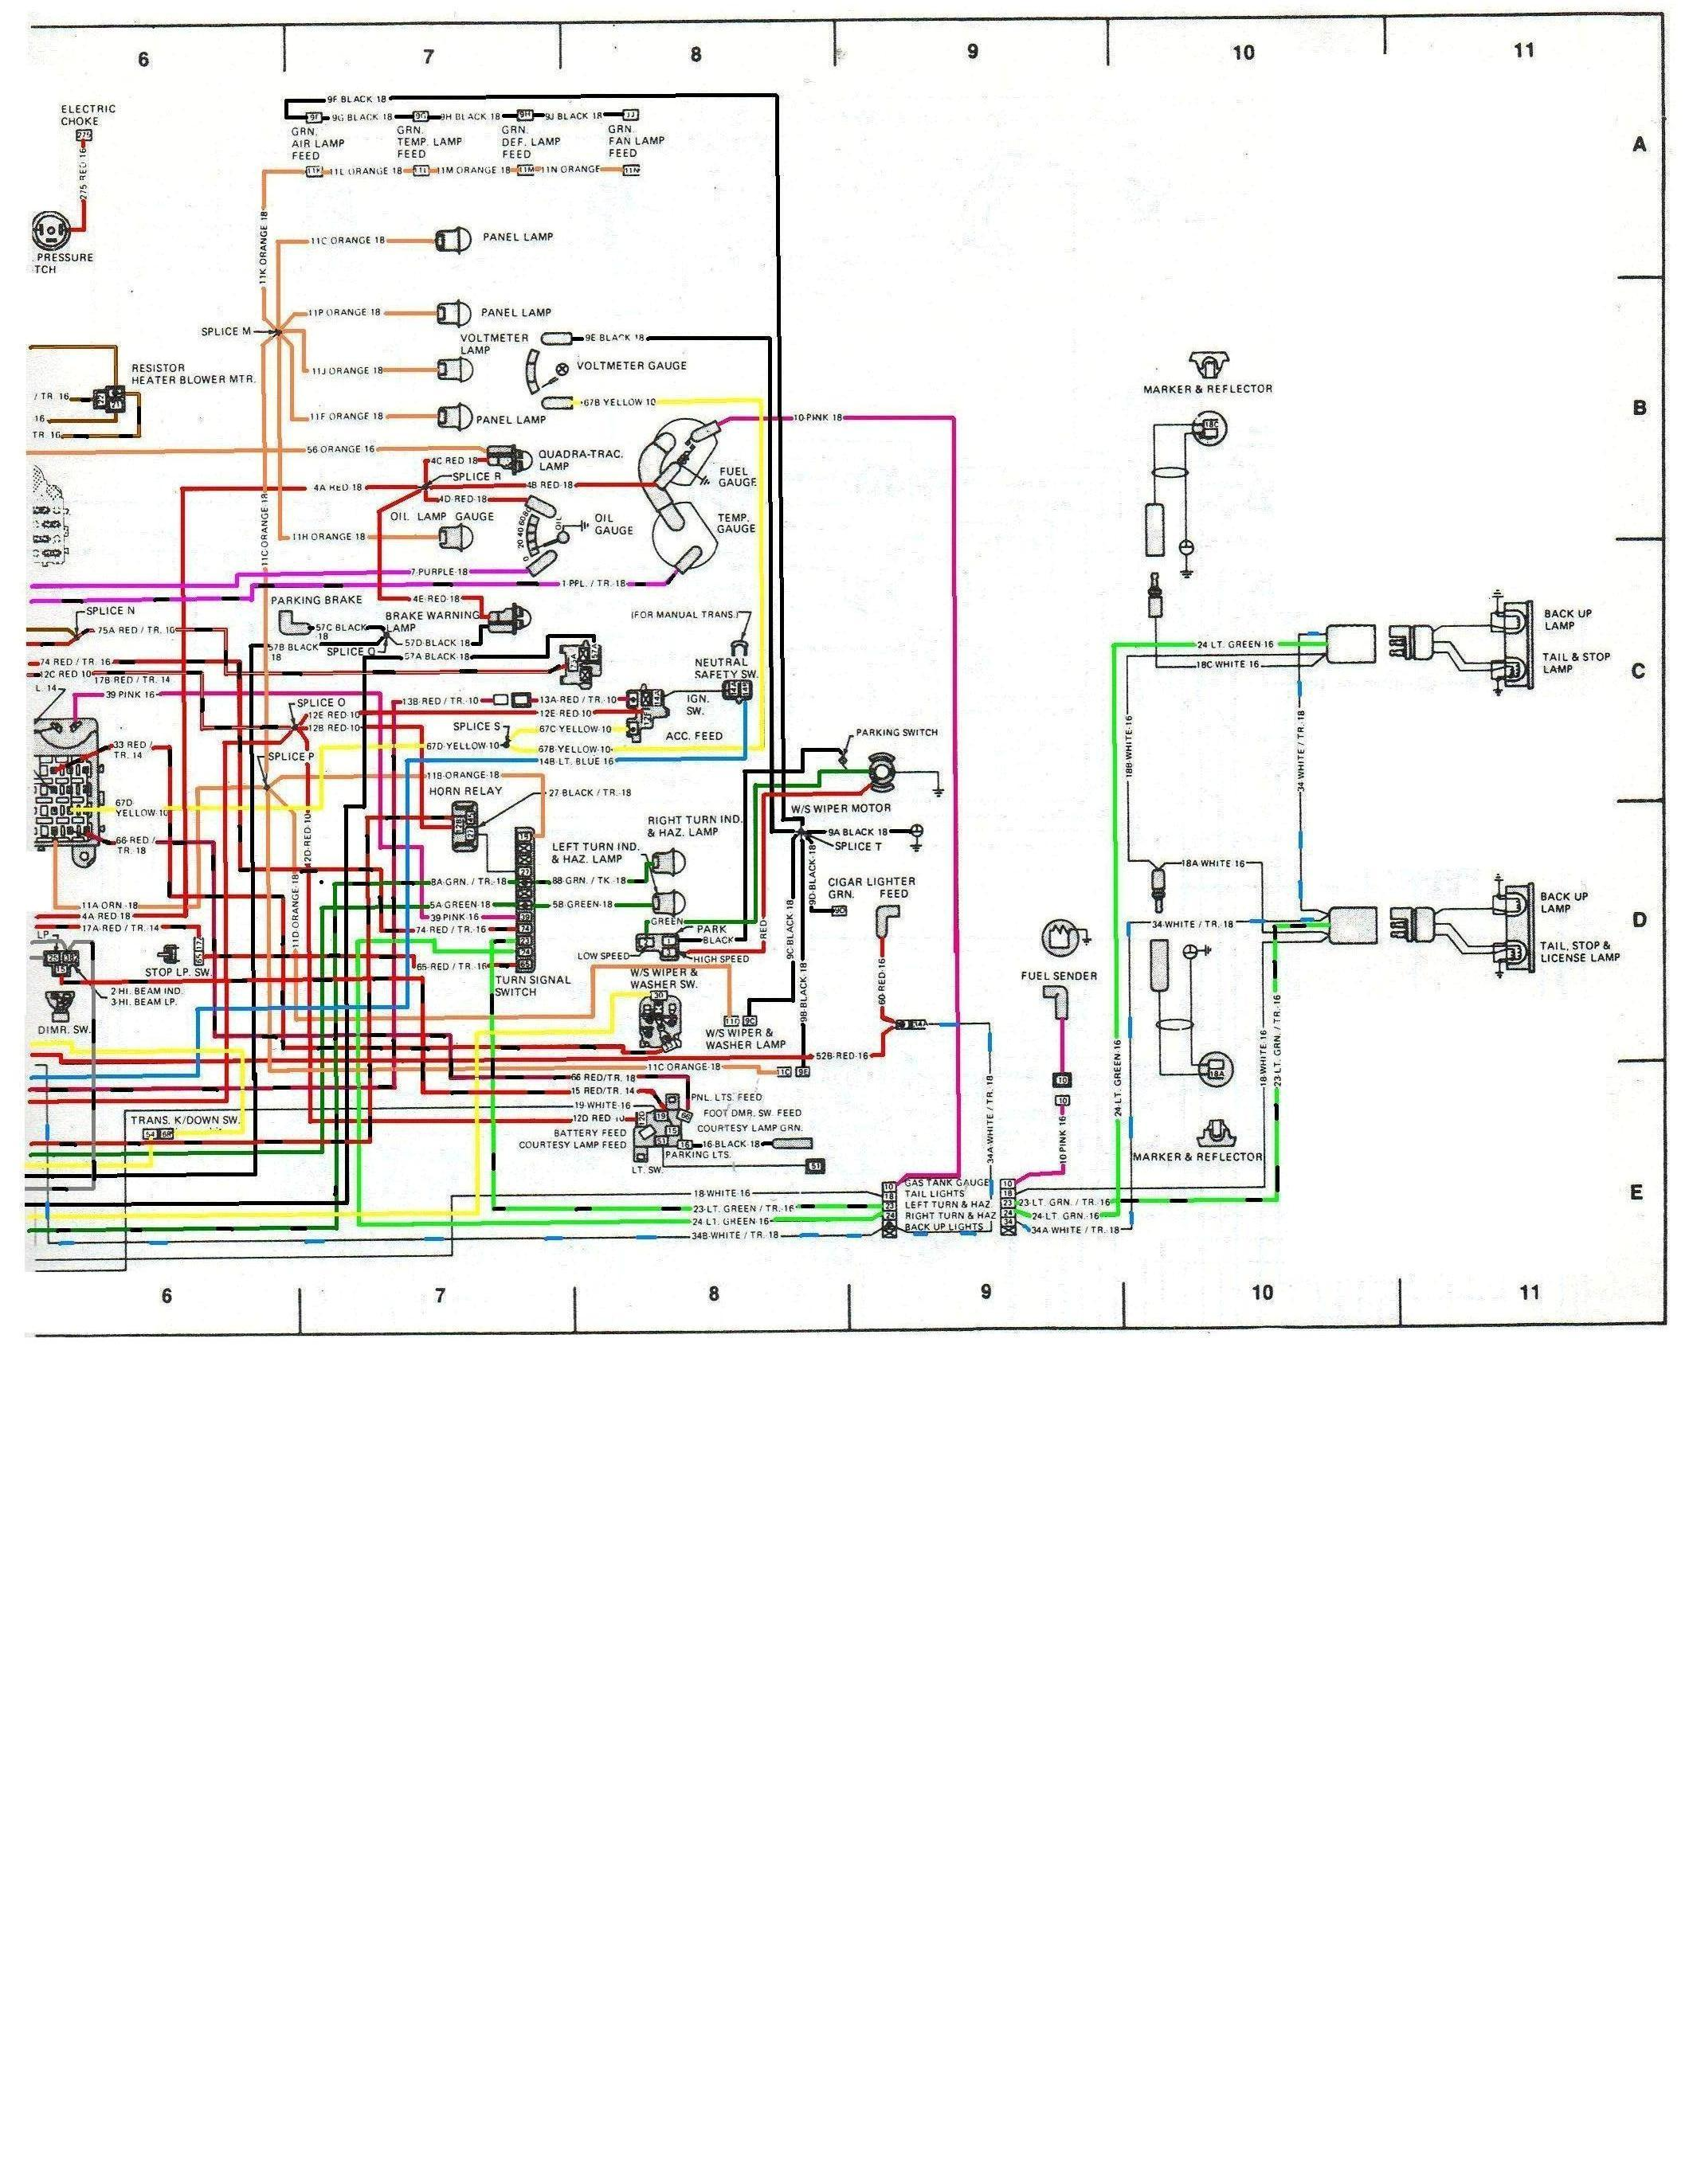 Wiring Diagram On Cj7 Jeep